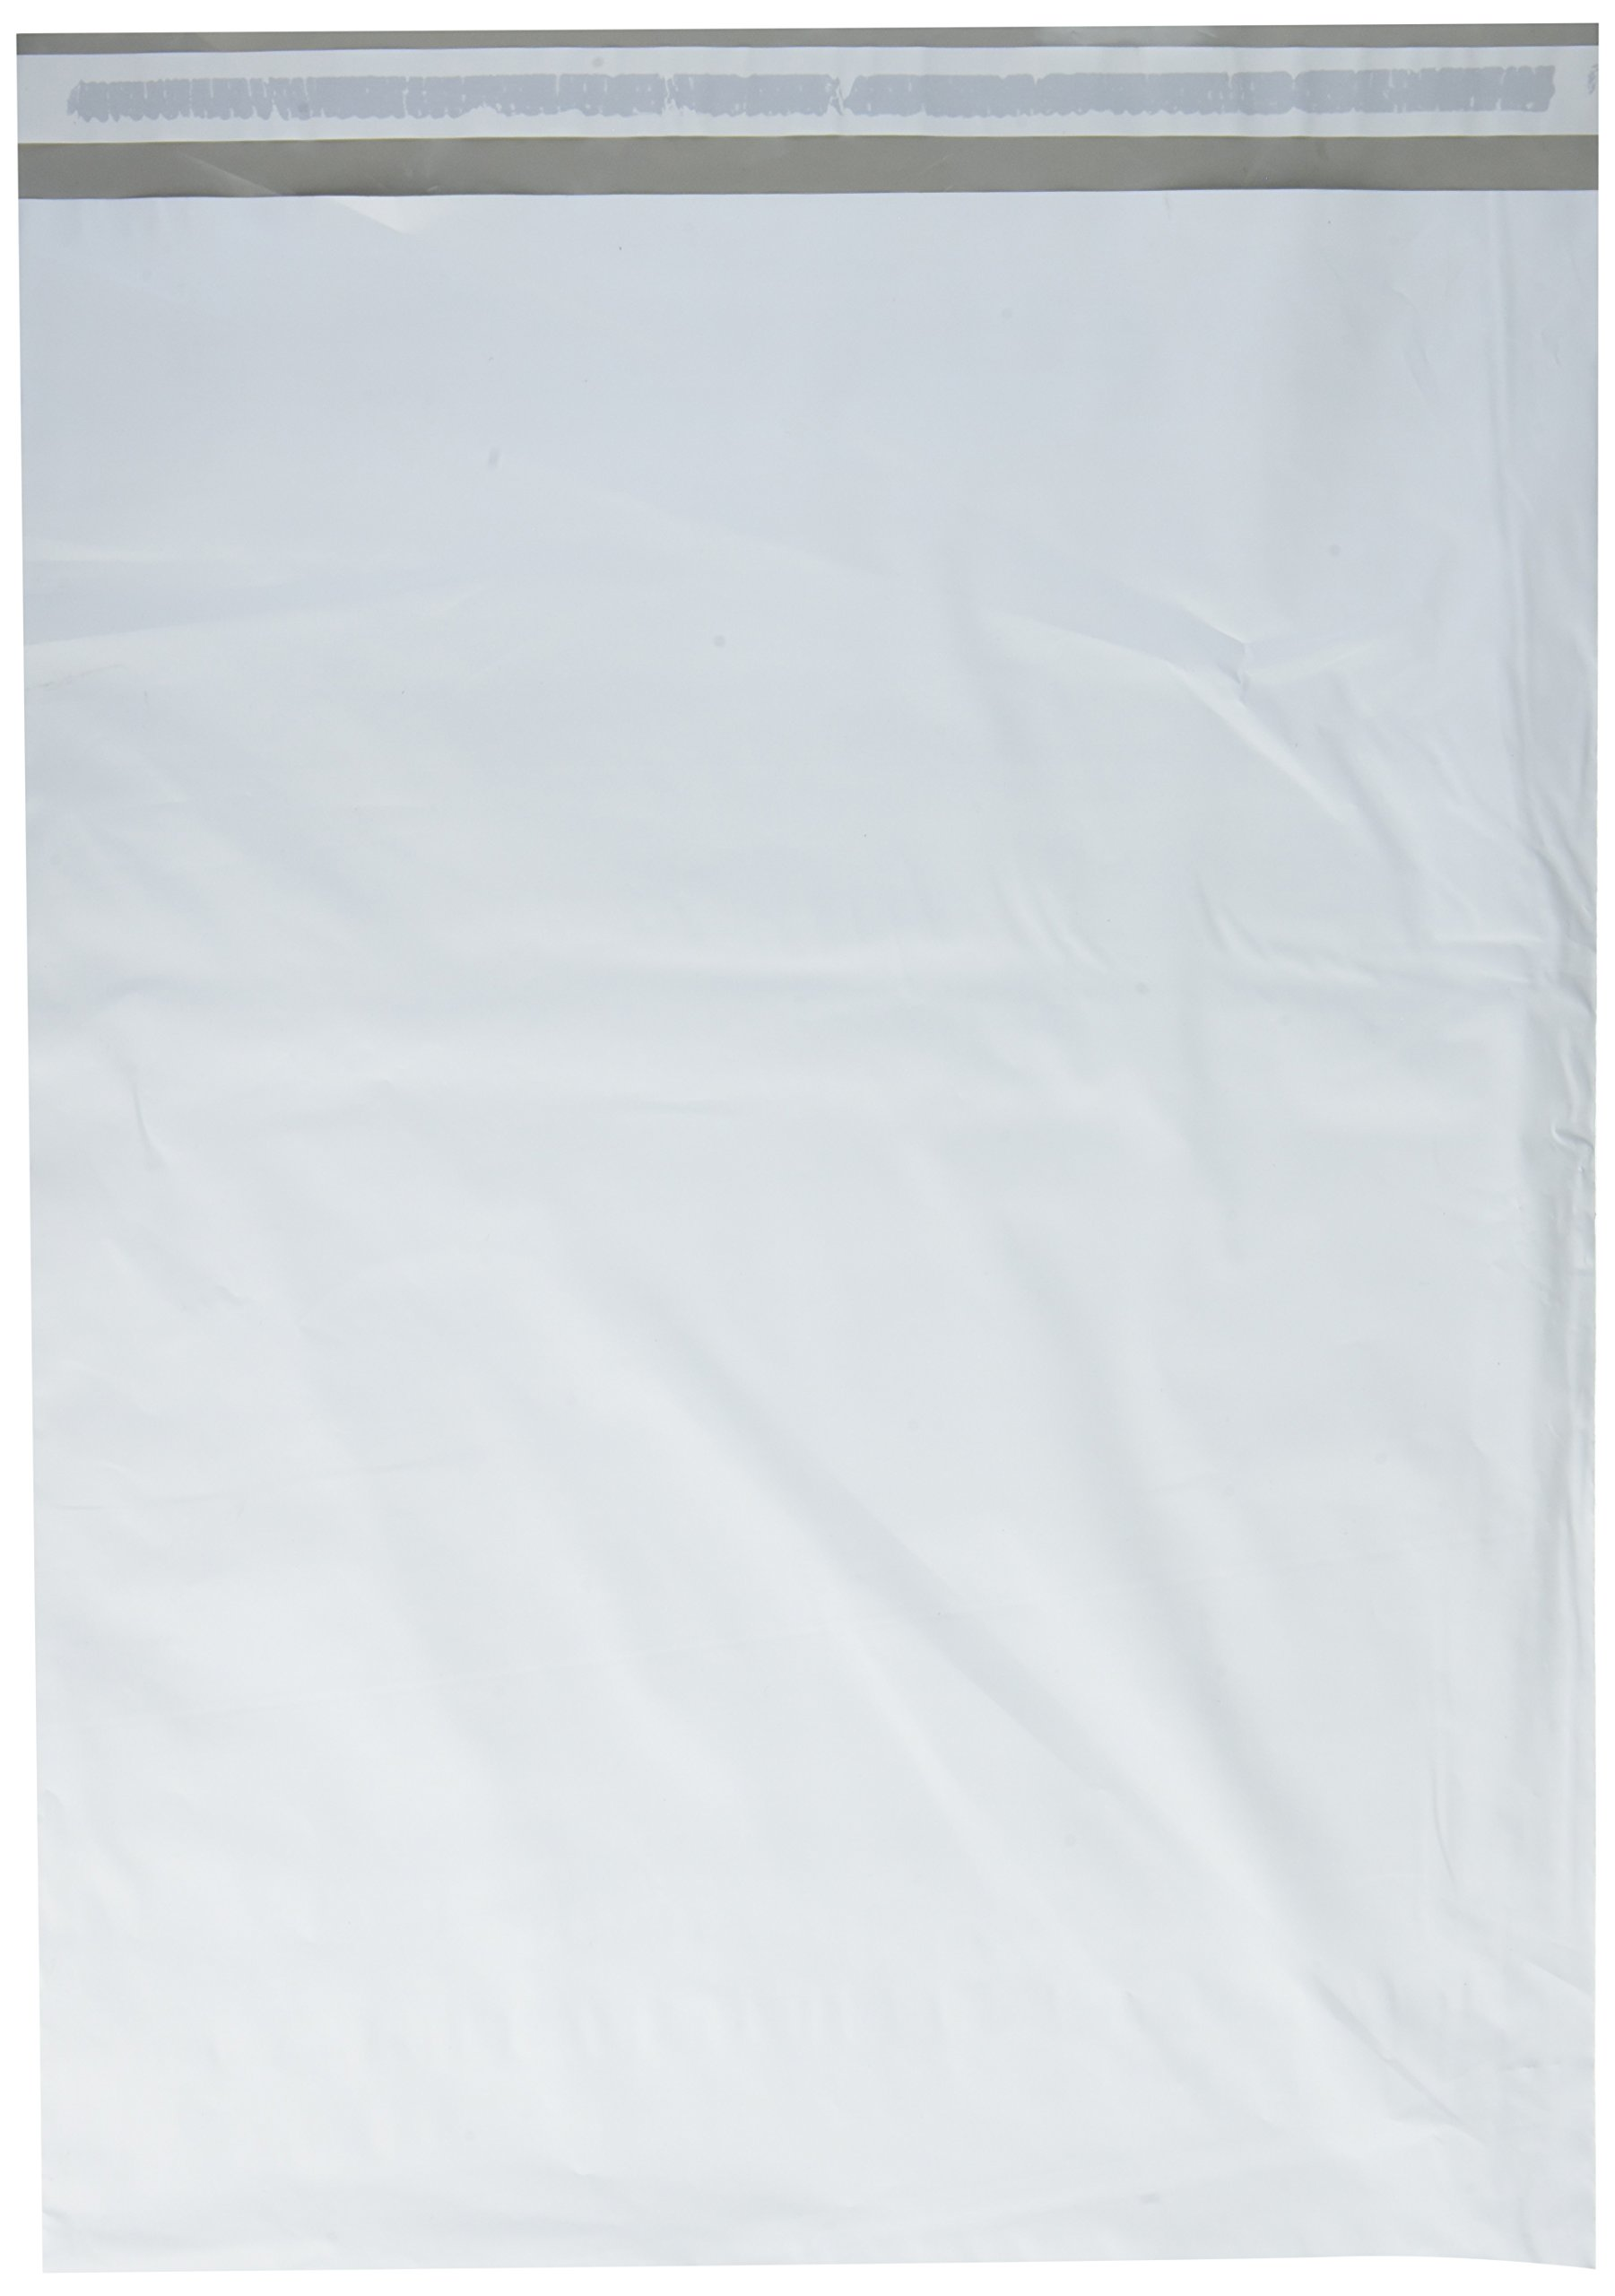 Poly Mailers Shipping Envelopes Bags, 14.5 x 19 - inches, 100 Bags